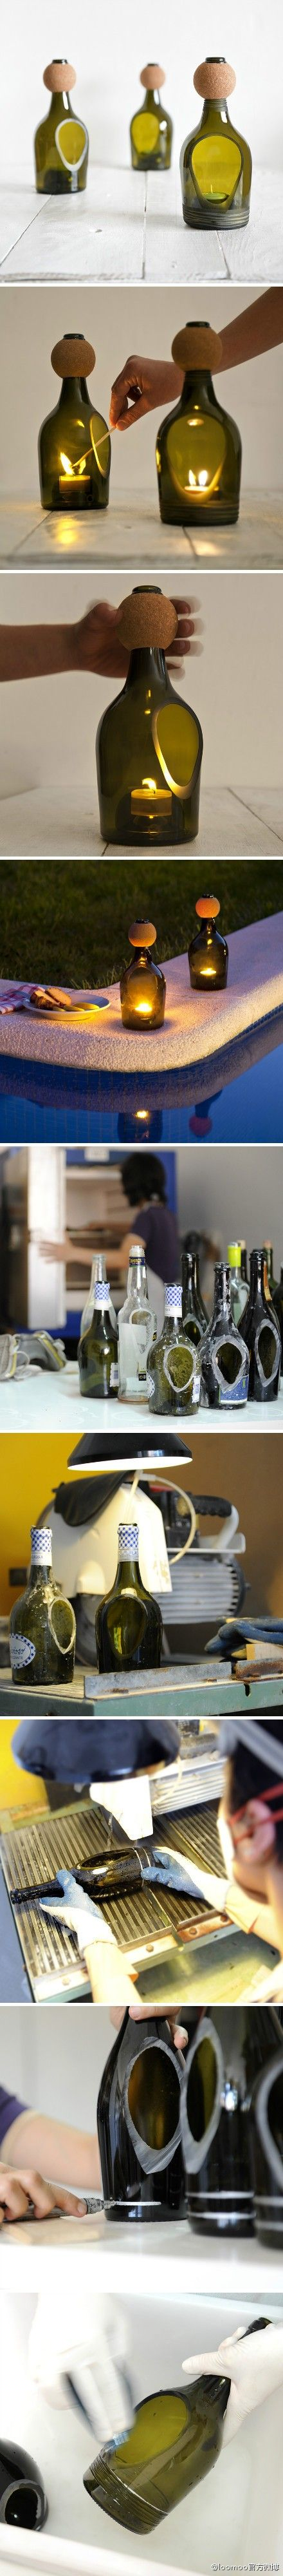 44 Simple DIY Wine Bottles Crafts And Ideas-HOMESTHETICS.NET (12)